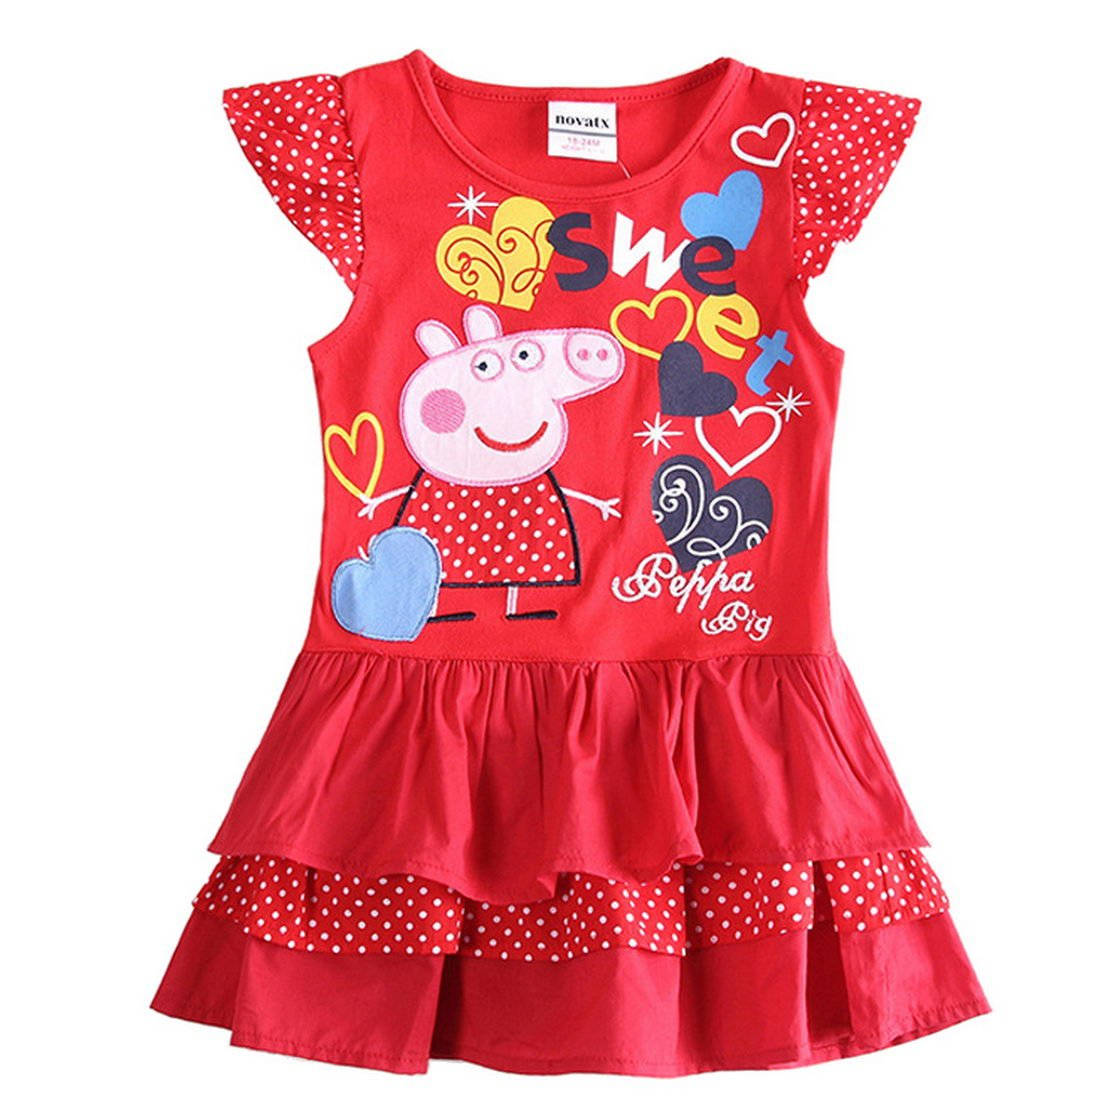 Peppa Pig Little Girls Cartoon Embroidered Stitching Pleated Cotton Dress Tiful